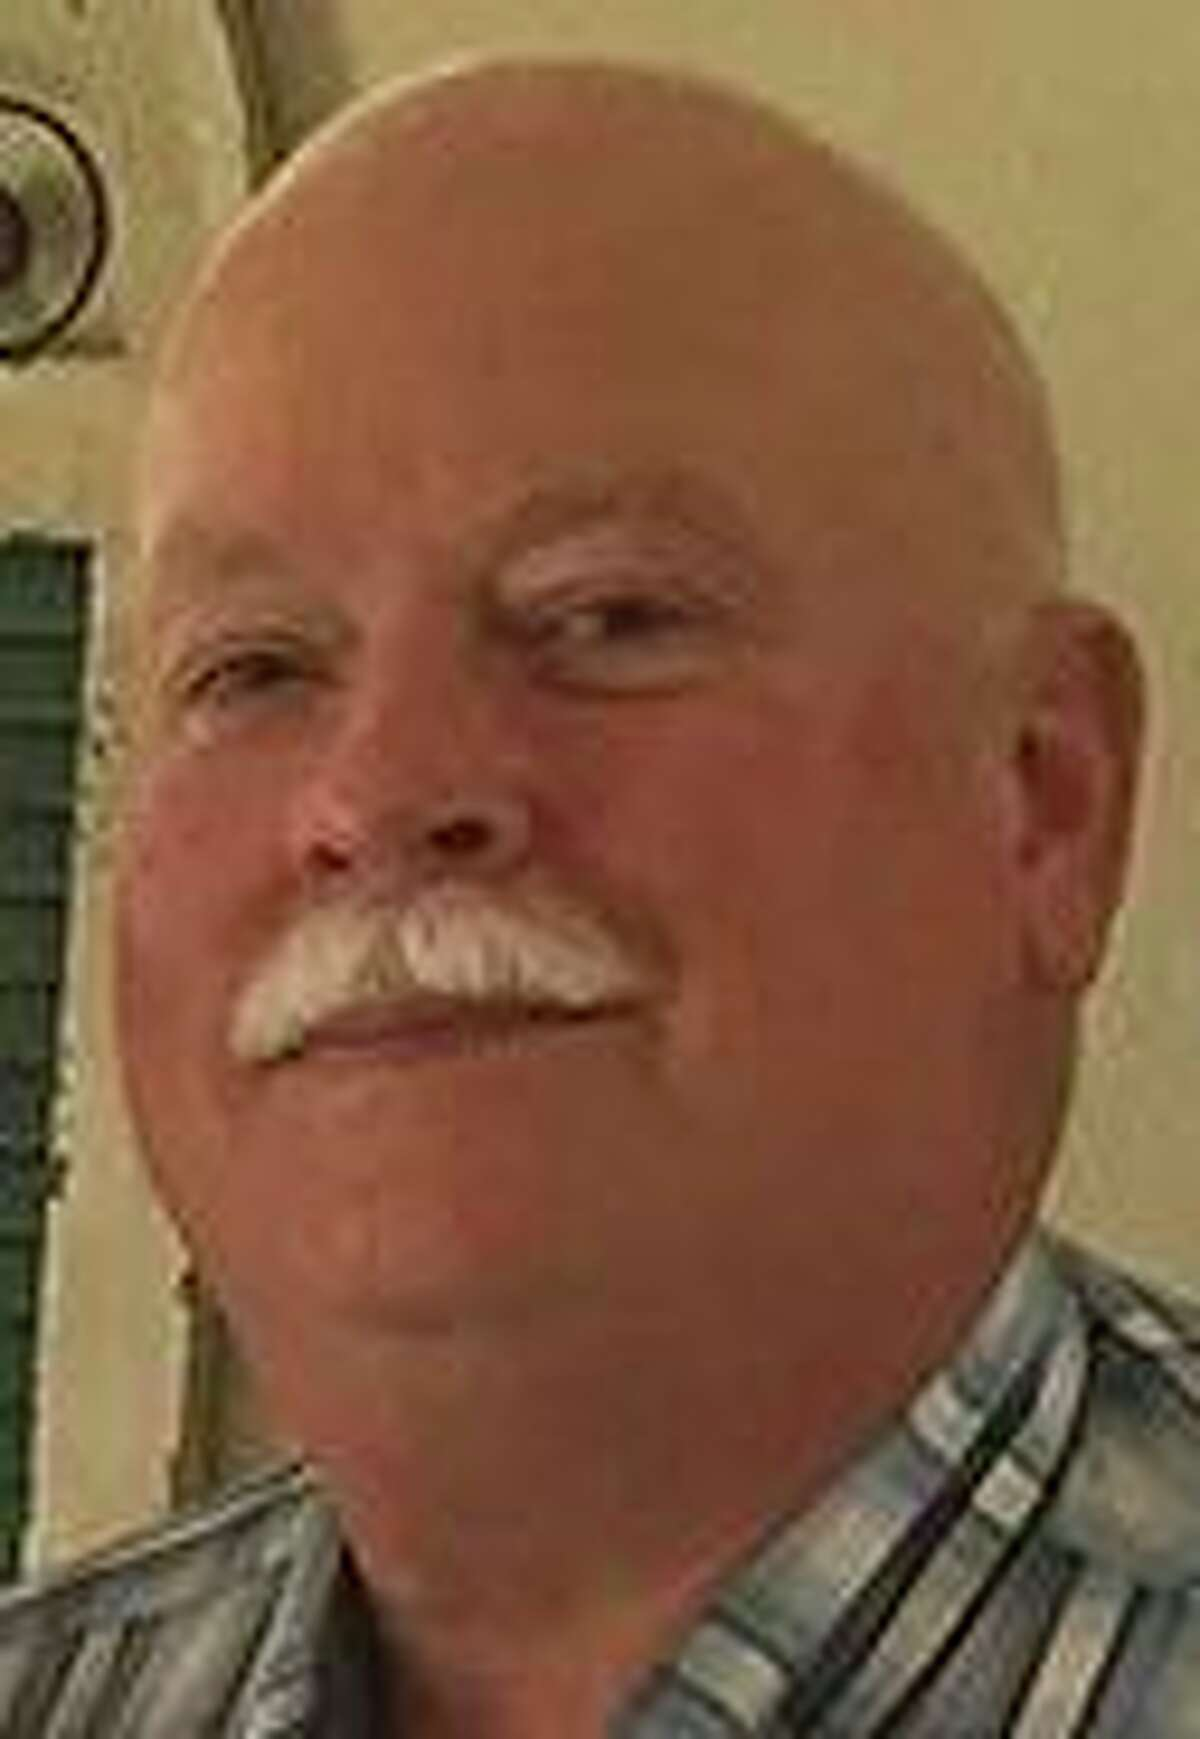 Richard Holley, a 62-year-old Jasper corrections officer, died from the coronavirus Tuesday, according to a news release from TDCJ.